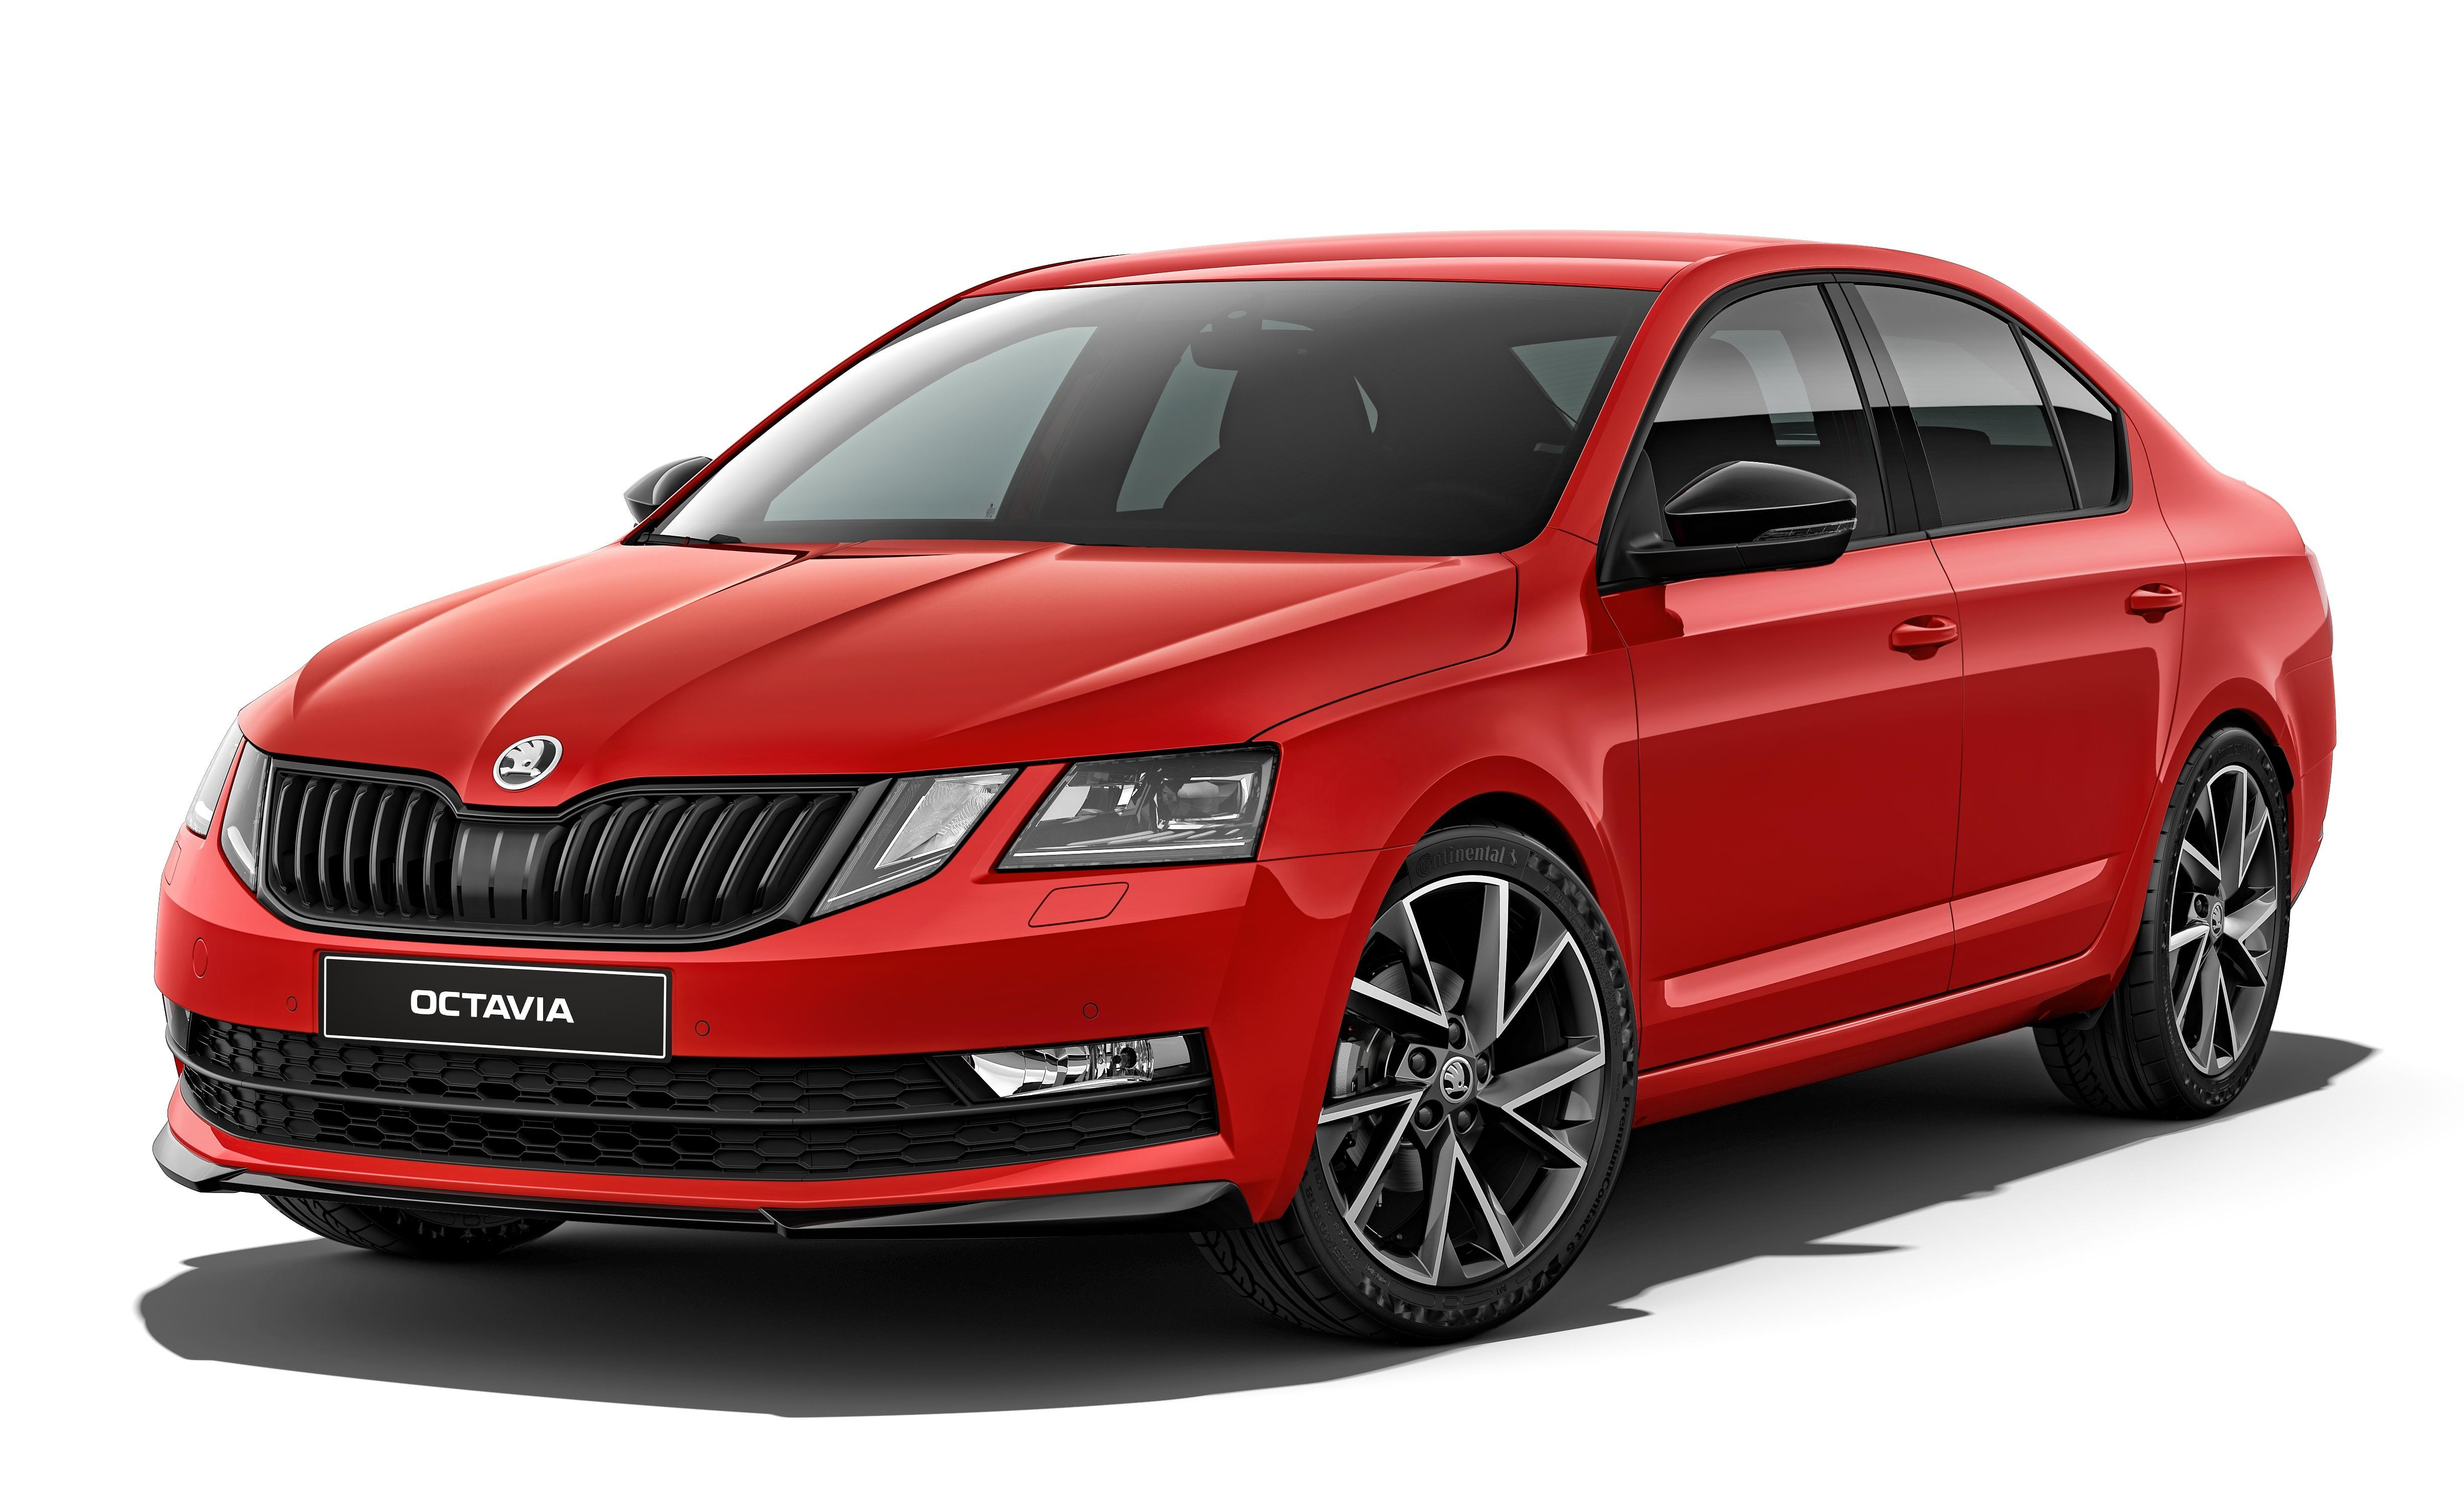 2019 Skoda Octavia Dynamic + Pictures, Photos, Wallpapers.